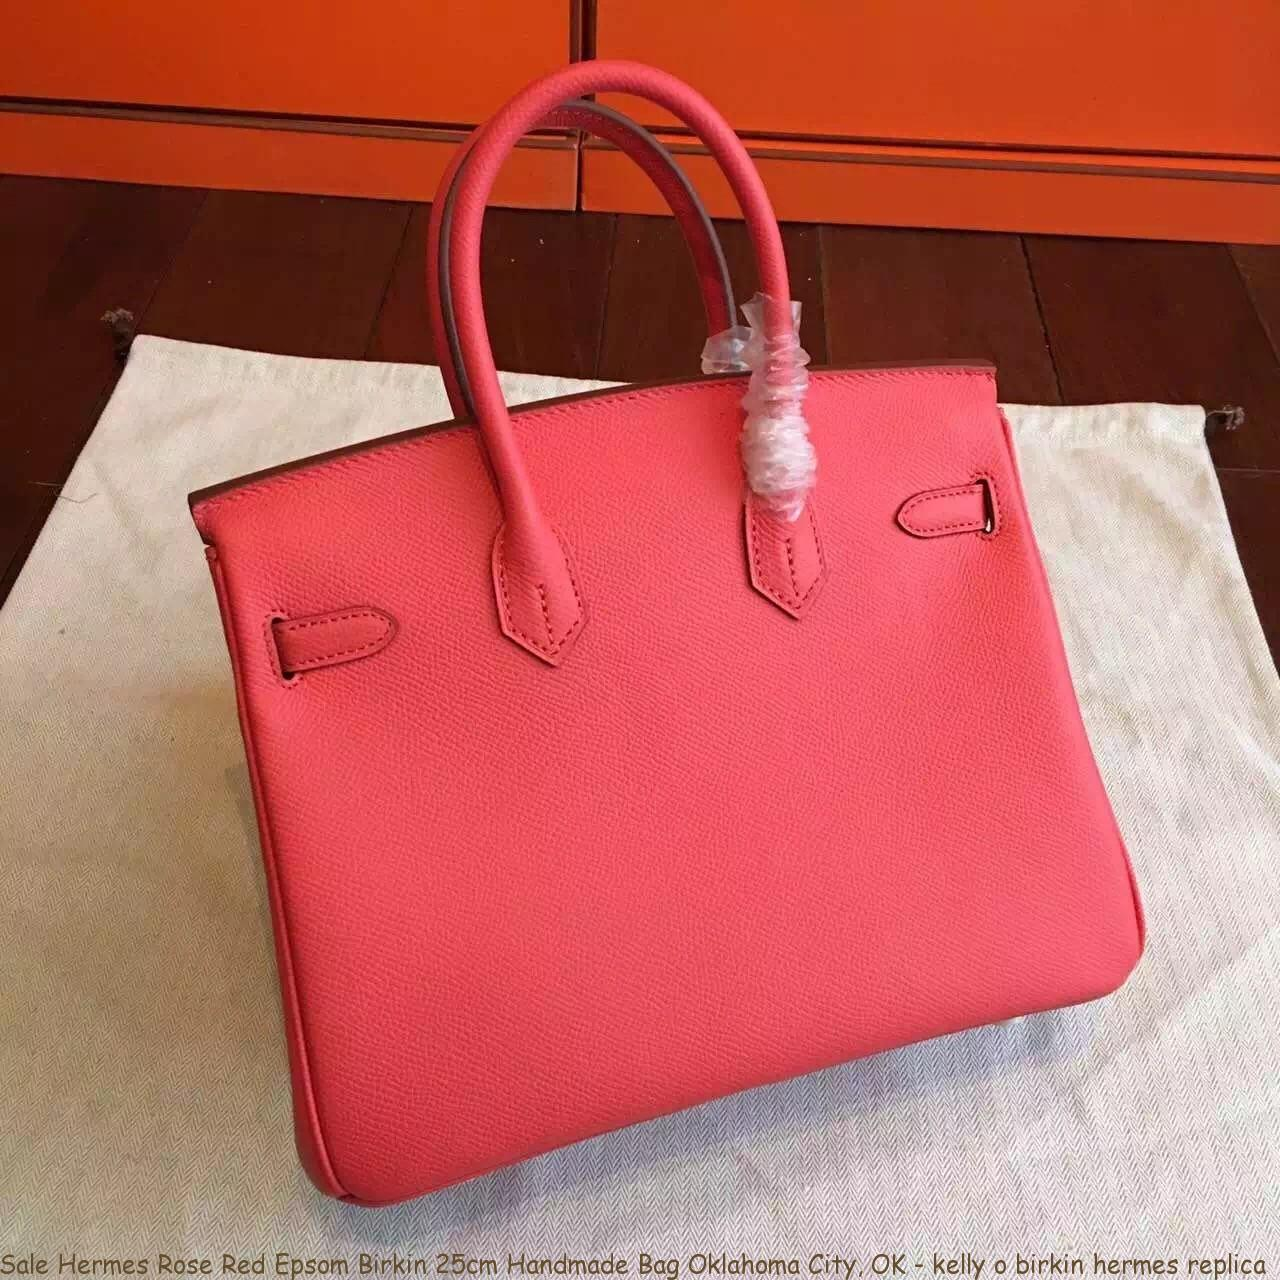 00d9e63e96 Sale Hermes Rose Red Epsom Birkin 25cm Handmade Bag Oklahoma City ...